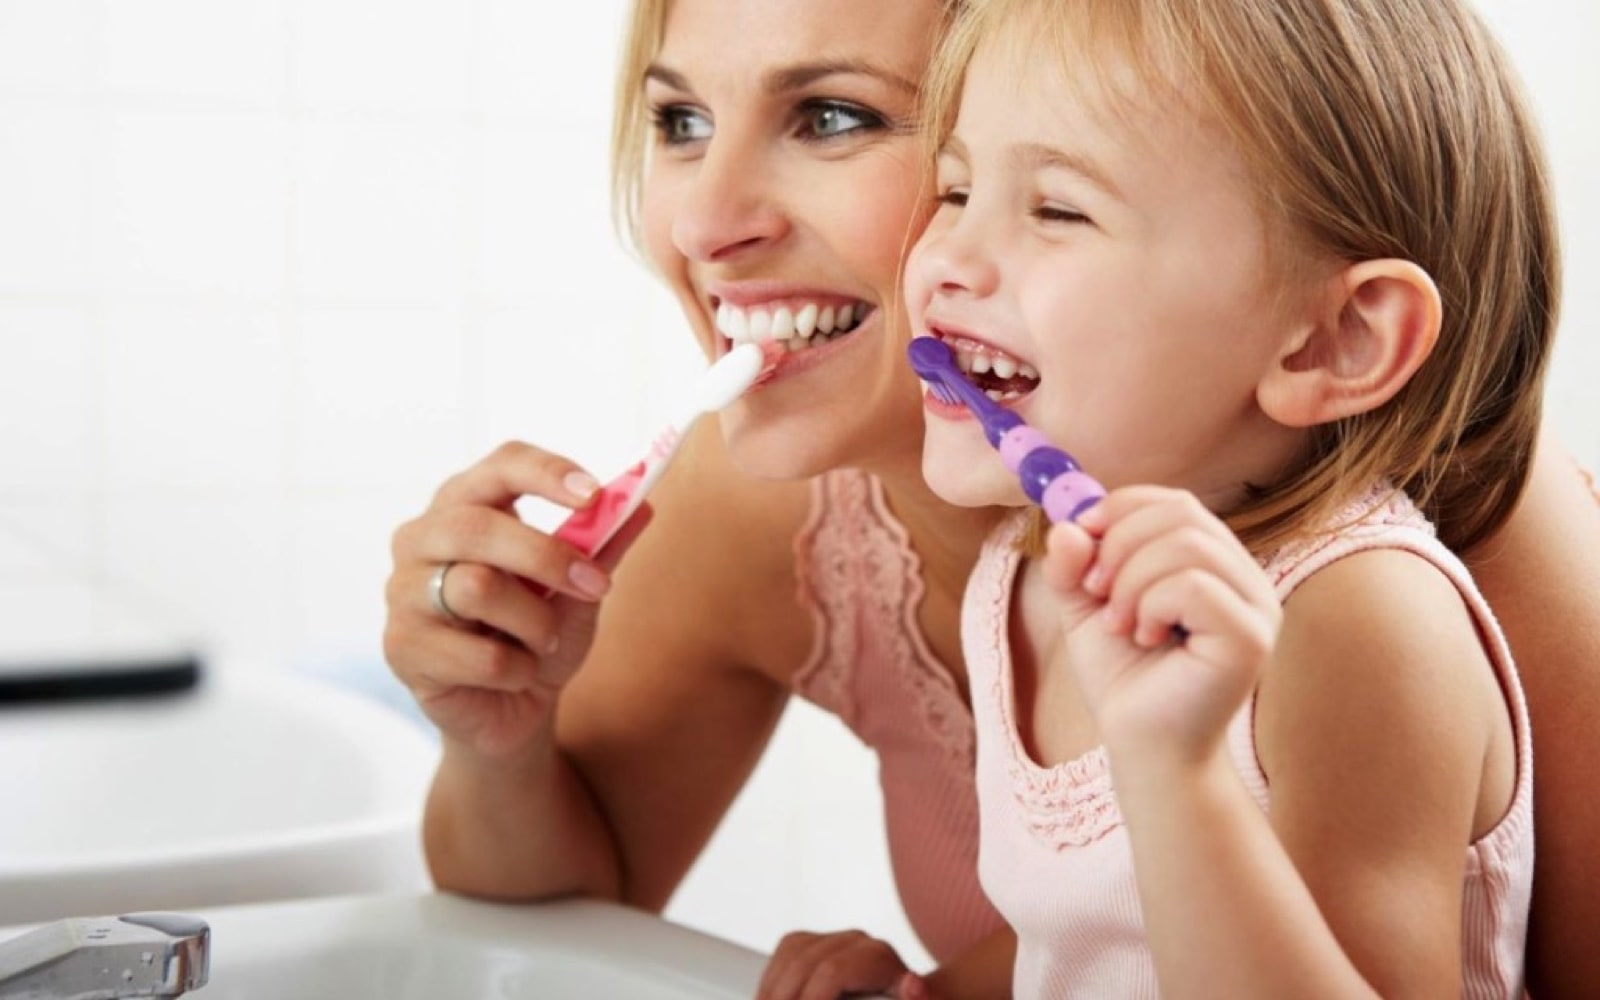 Dental care for children - brushing their teeth